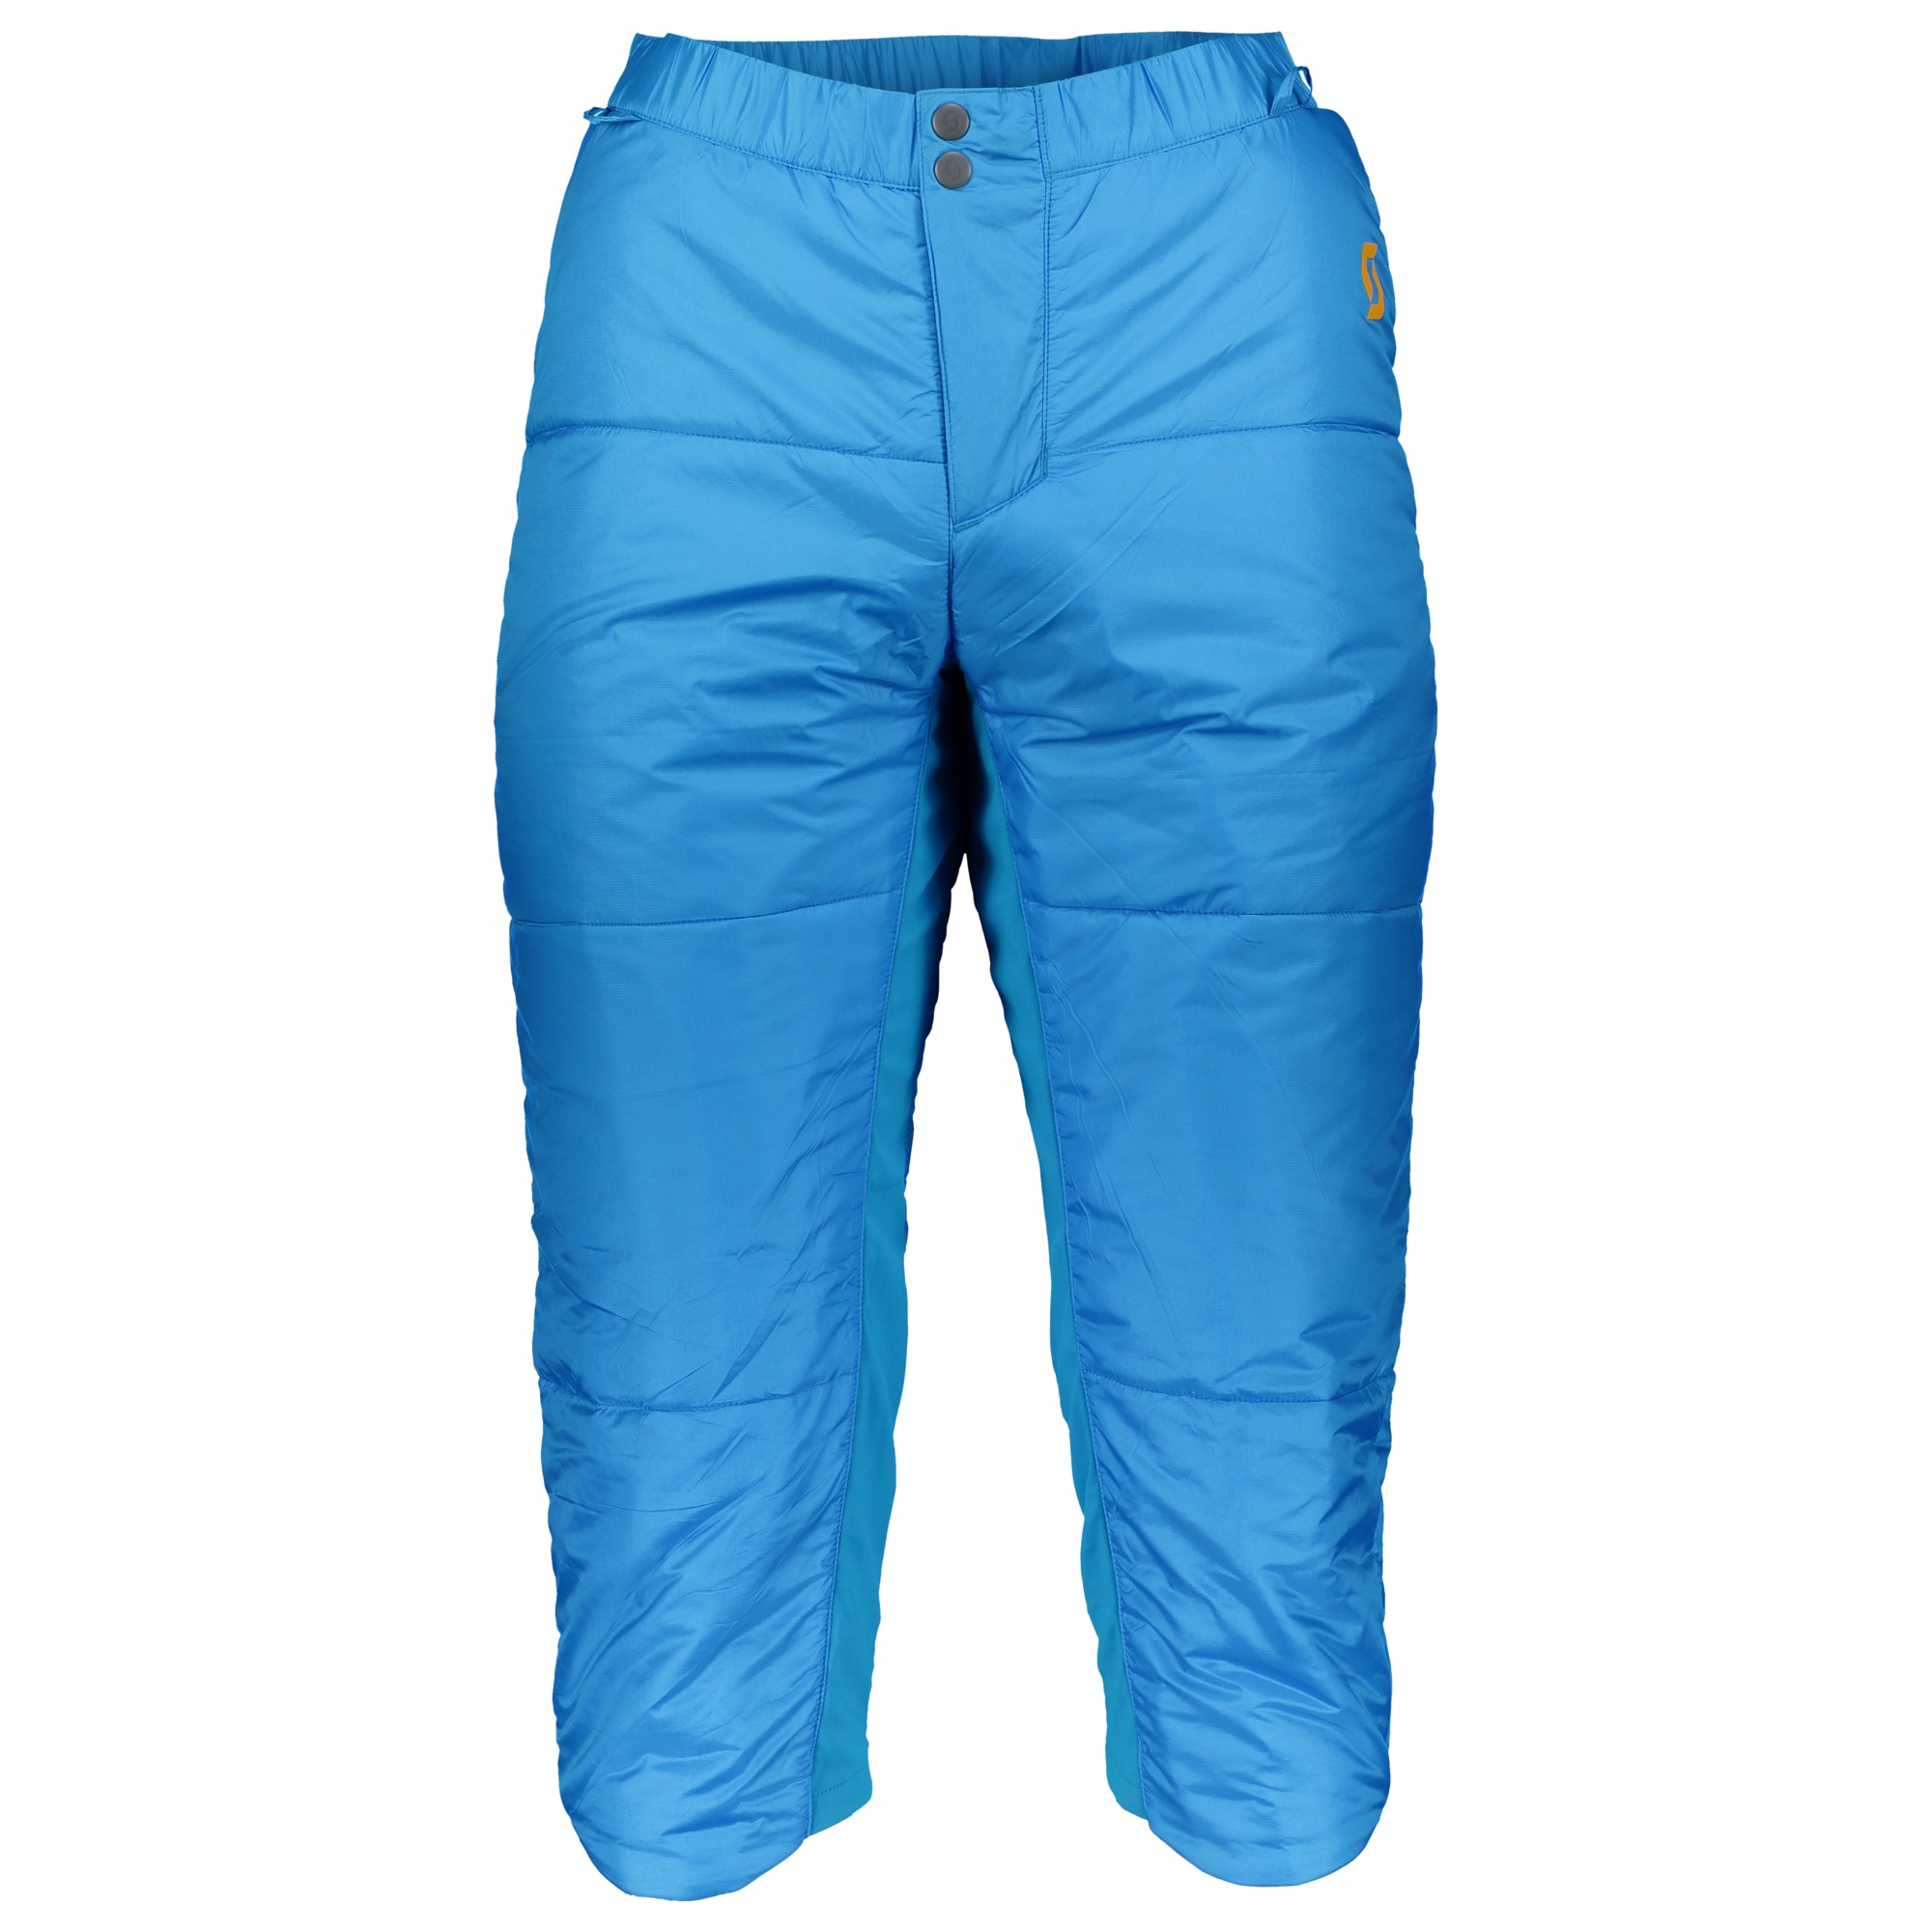 Pantaloni SCOTT Vertic 3in1